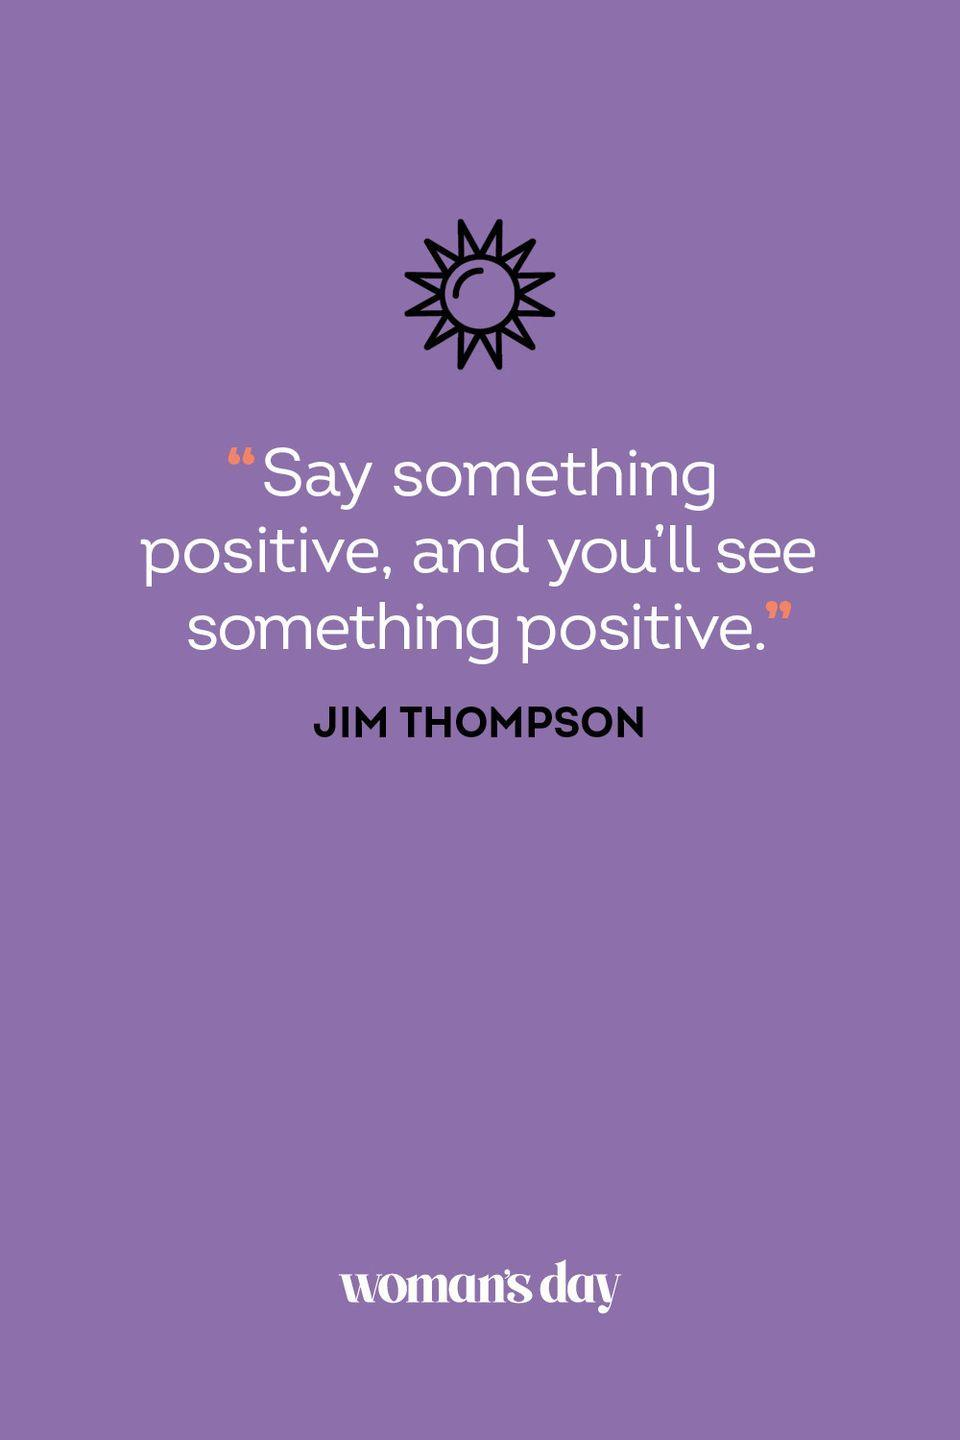 <p>Say something positive, and you'll see something positive.</p>